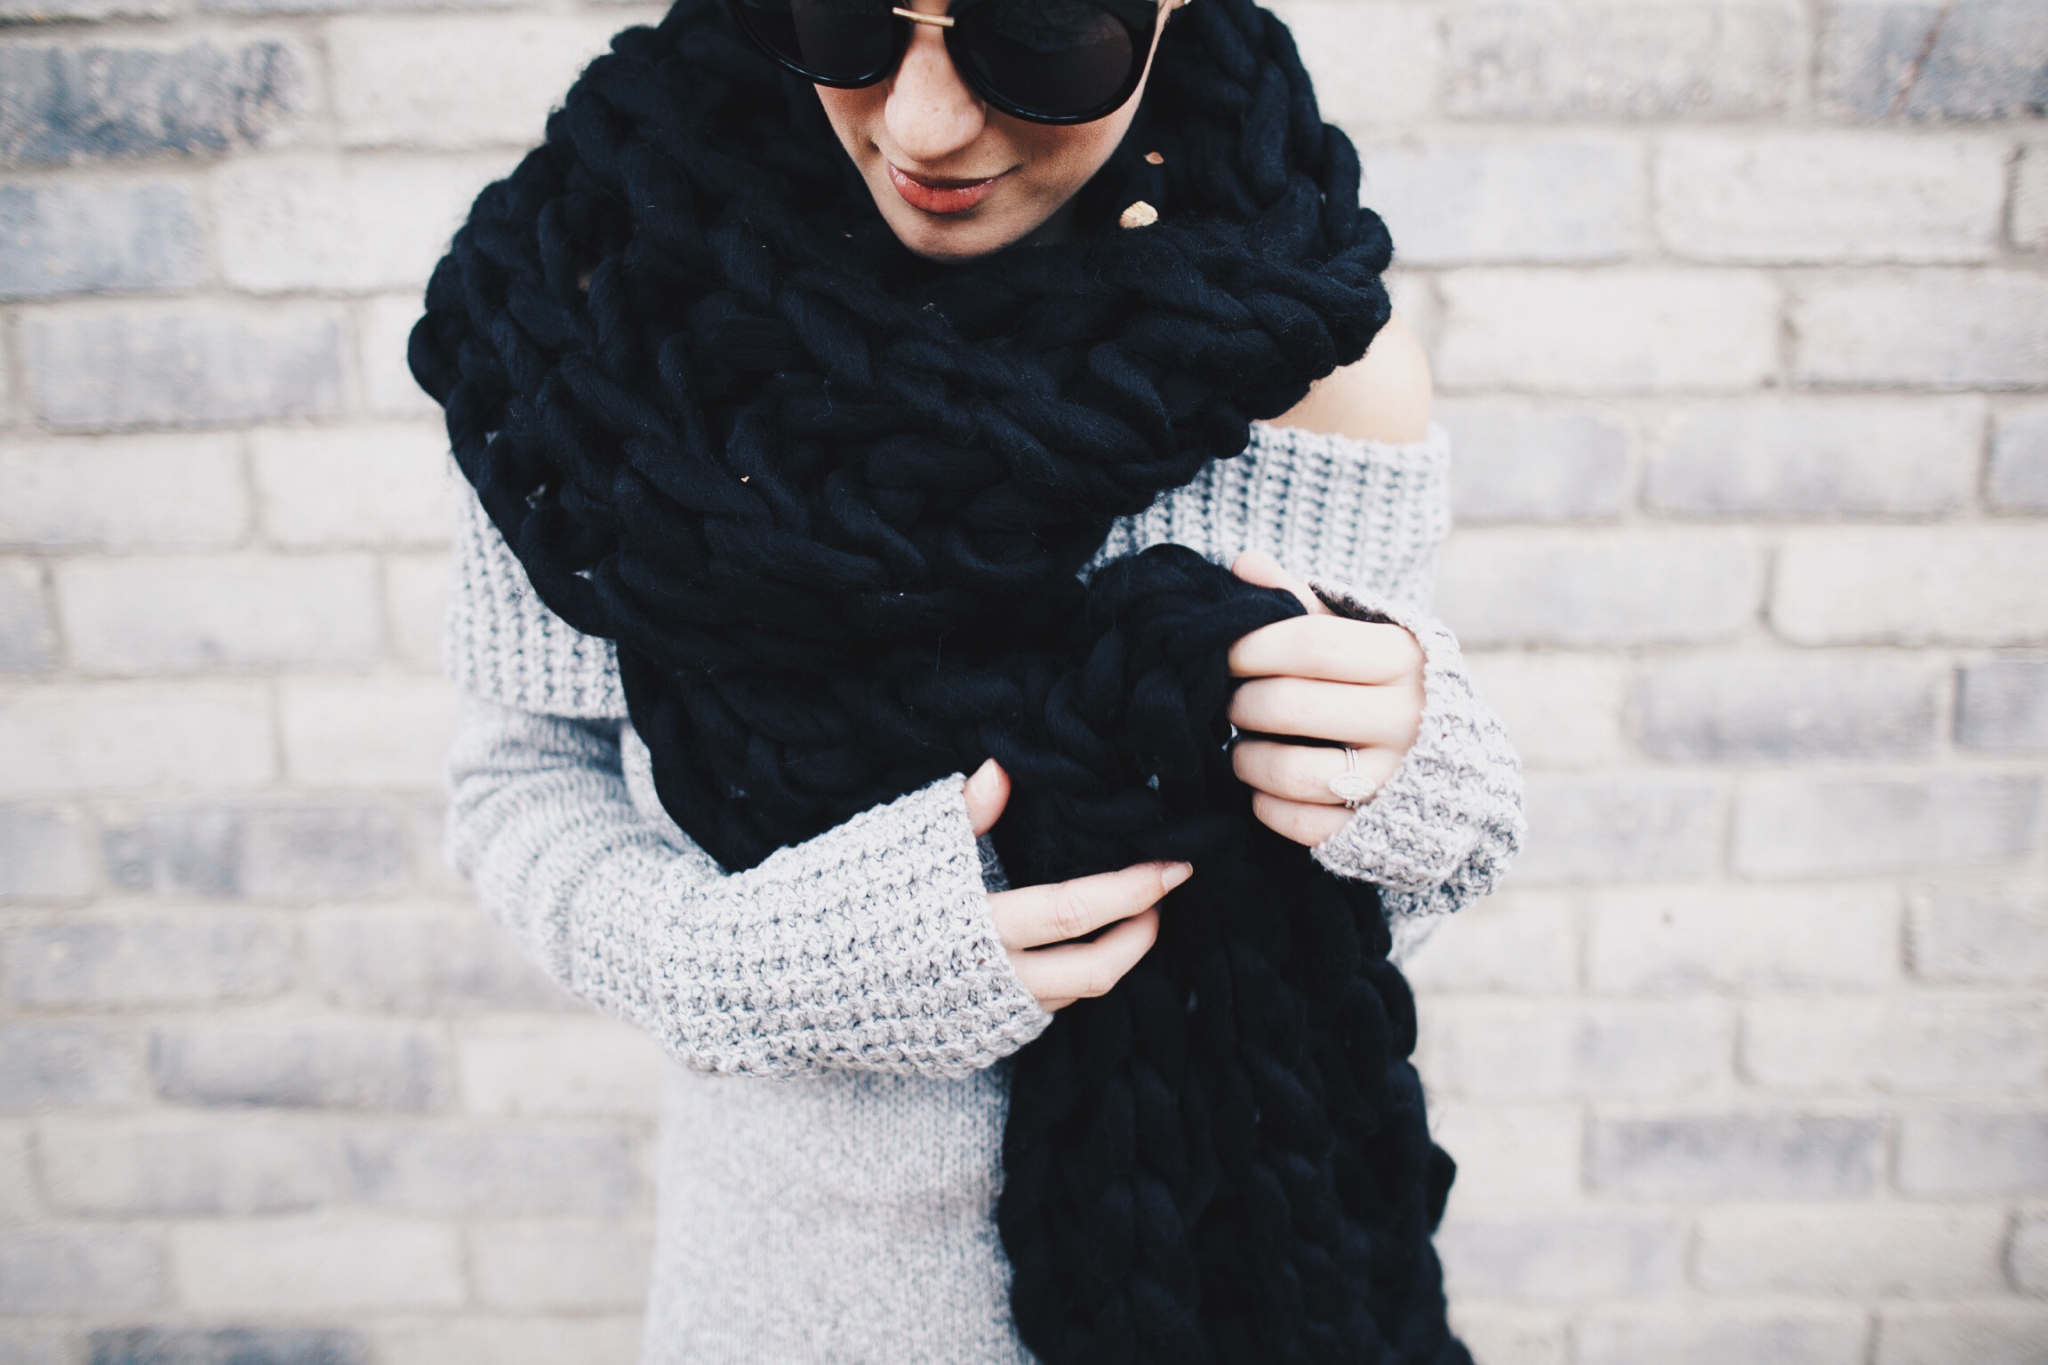 Black Chunky Knit Scarf | how to style a chunky knit scarf | how to wear a chunky knit scarf | chunky knit scarf style tips | fall scarves | scarves for fall and winter | fall fashion tips | fall outfit ideas | fall style tips | what to wear for fall | cool weather fashion | fashion for fall | style tips for fall | outfit ideas for fall || Dressed to Kill  #chunkyscarf #knitscarf #scarvesforwomen